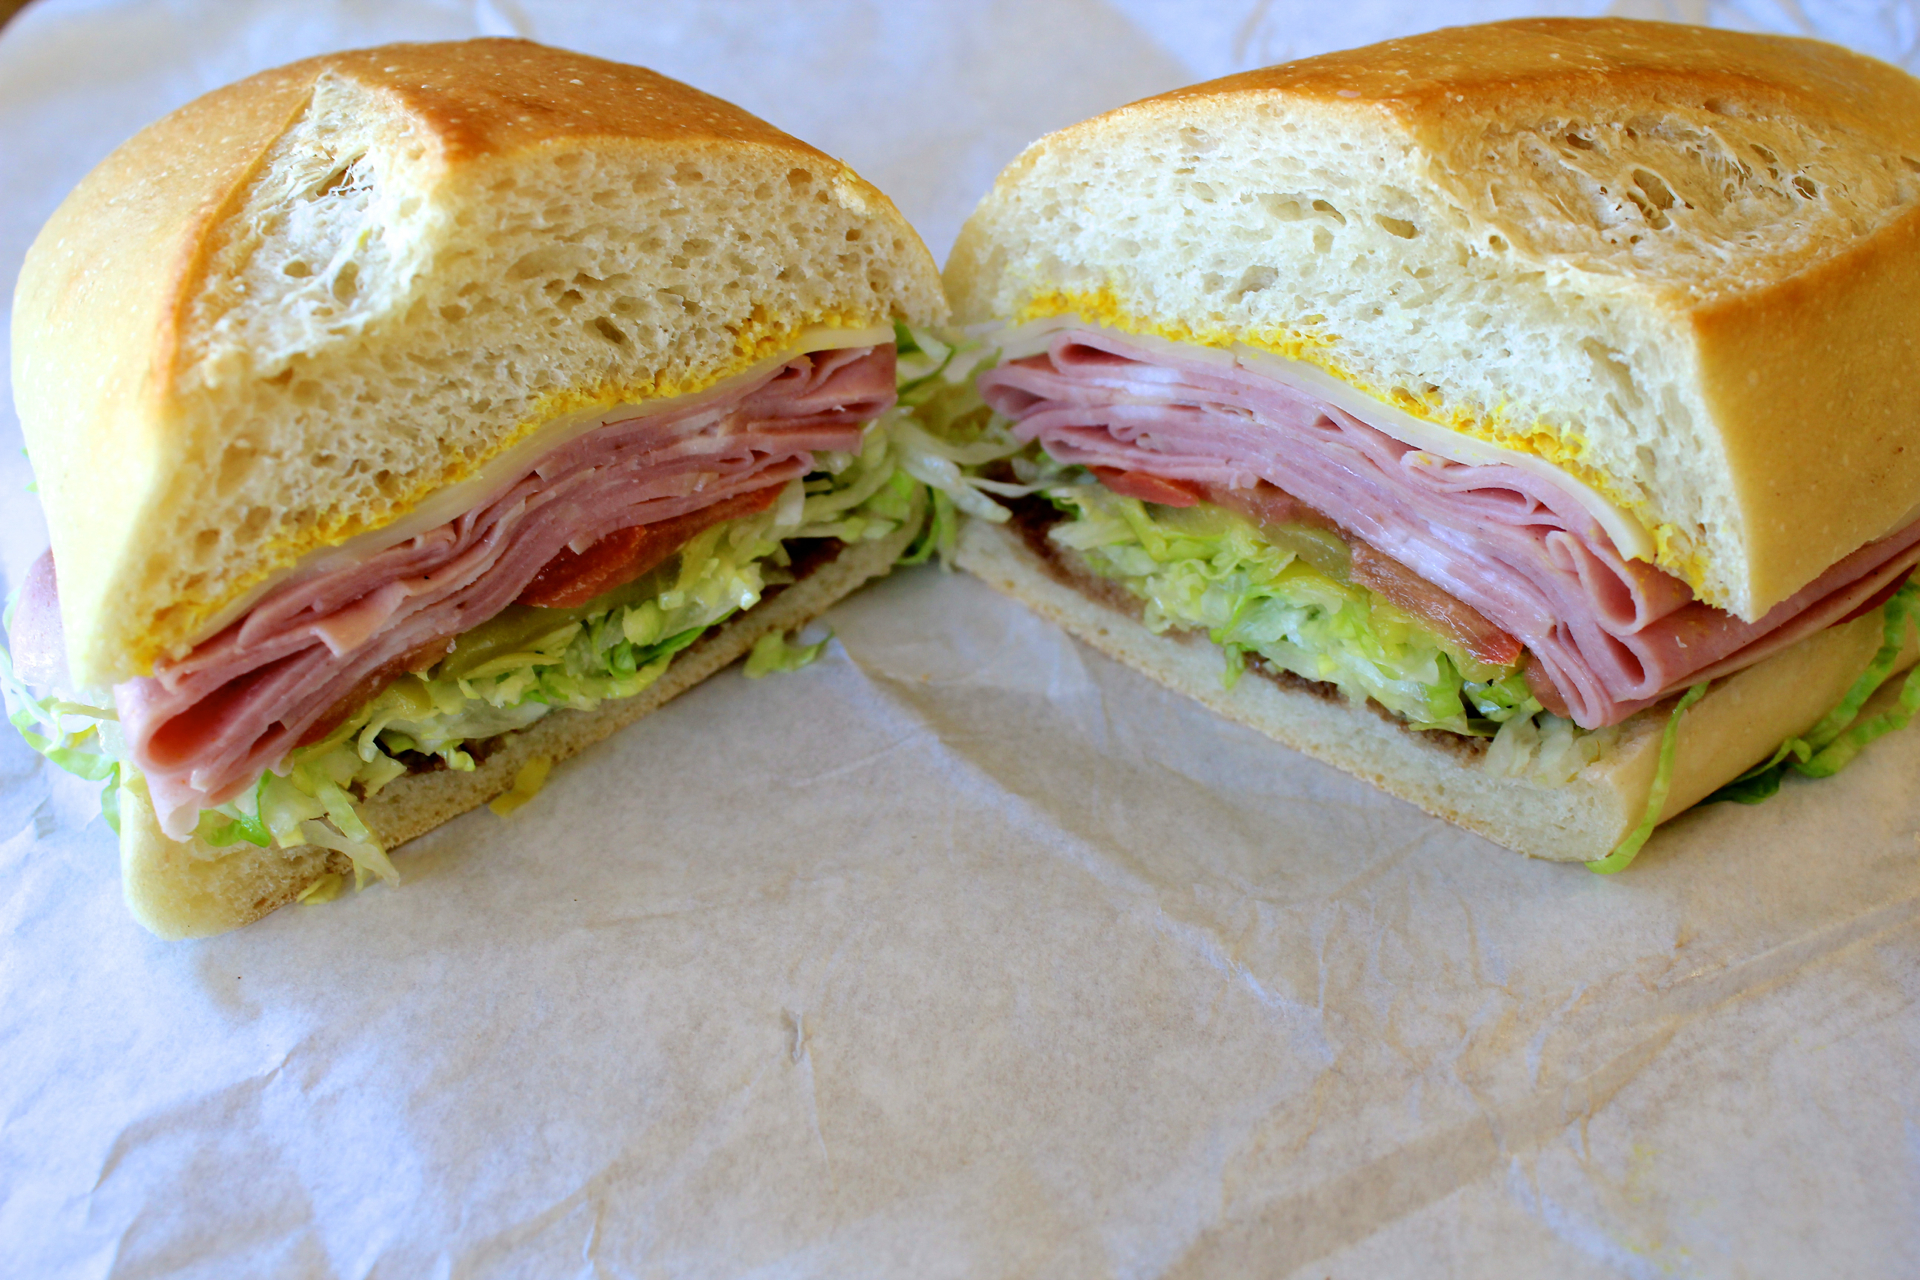 A mortadella sandwich at Chiaramonte's Deli & Sausages.